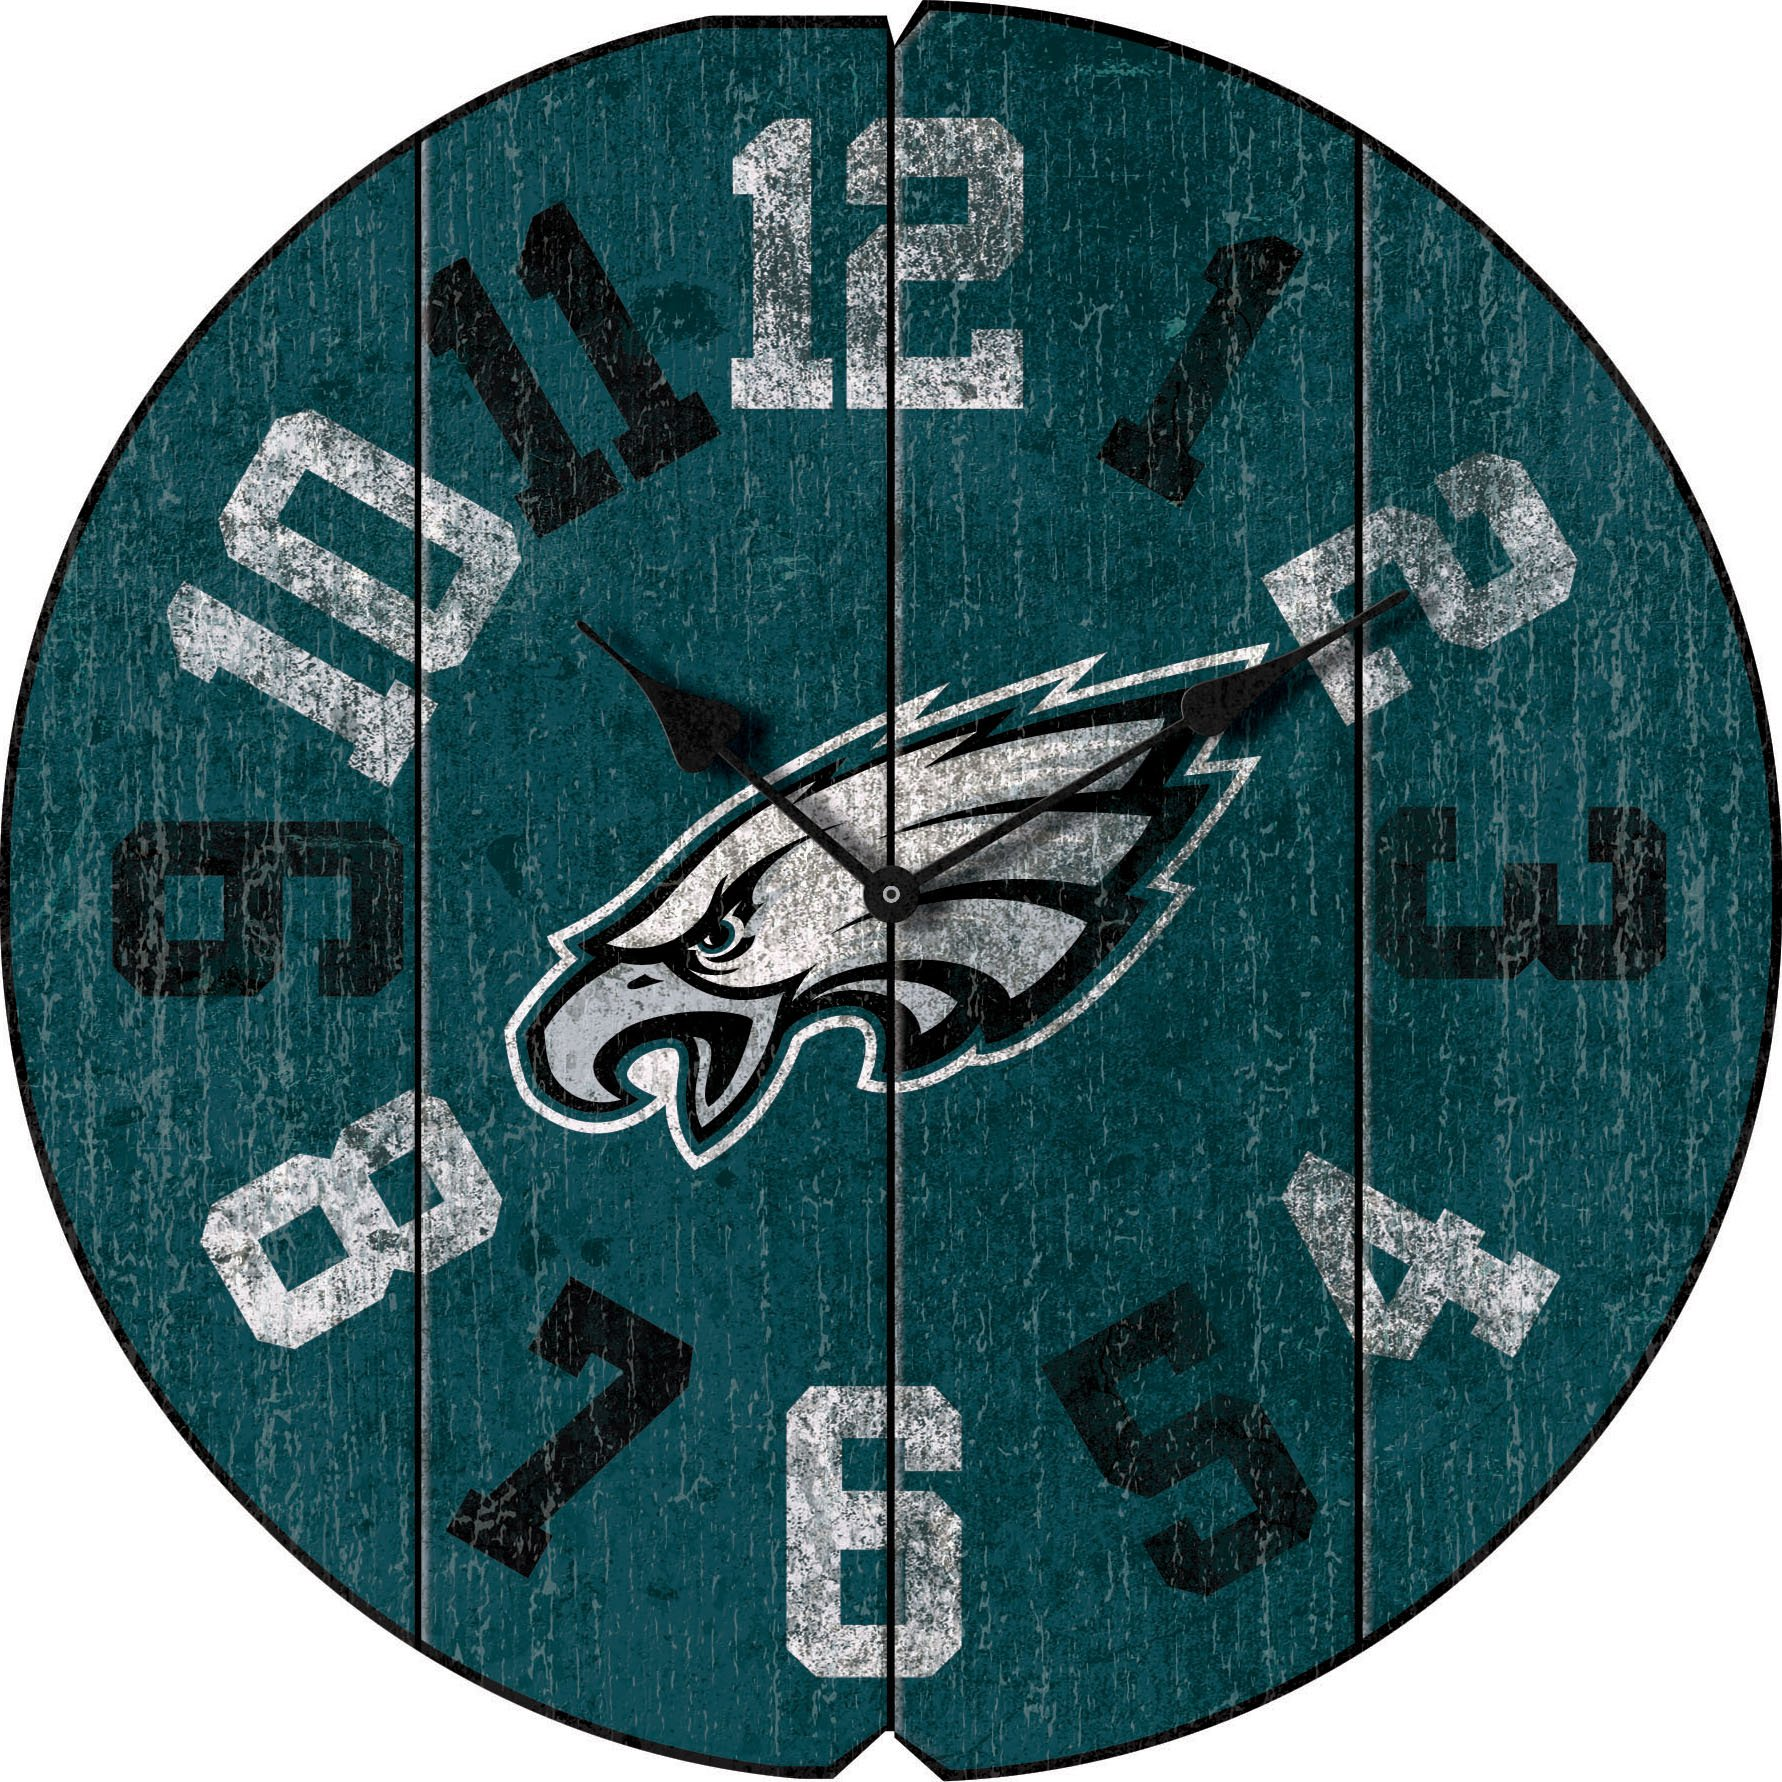 Imperial Officially Licensed NFL Merchandise: Vintage Round Clock, Philadelphia Eagles by Imperial